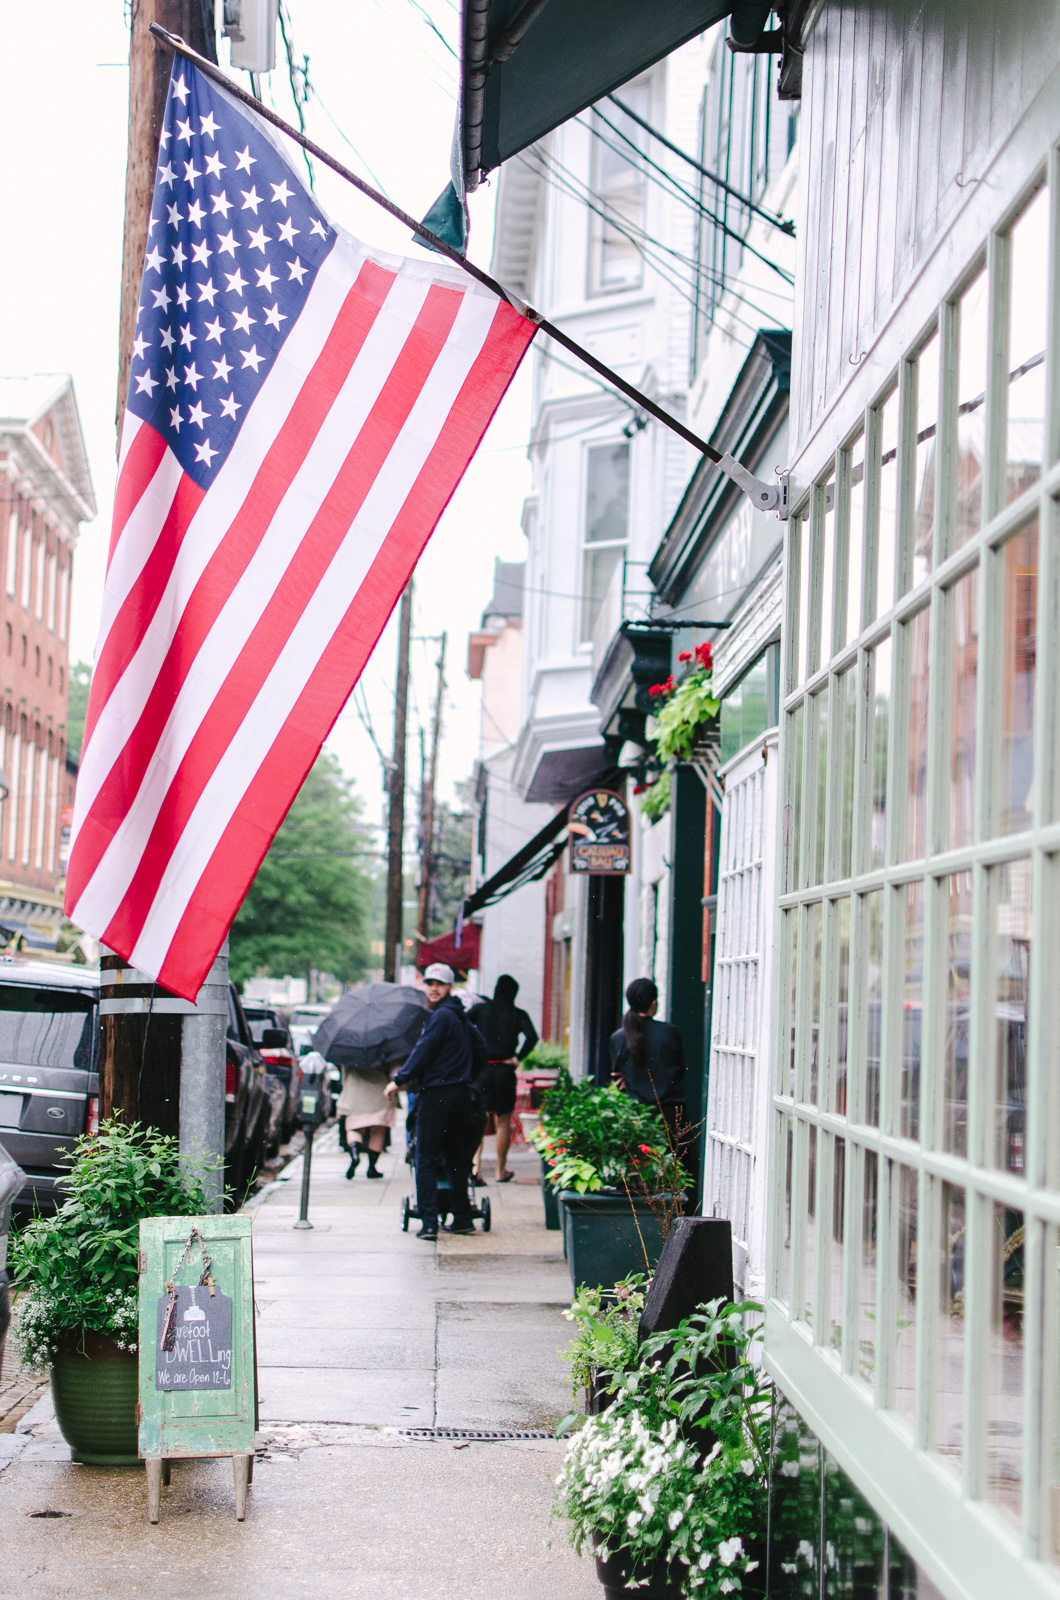 Annapolis Main Street shopping | Don't miss the full Annapolis Weekend Guide: where to eat, what to do, and where to stay! | bylaurenm.com